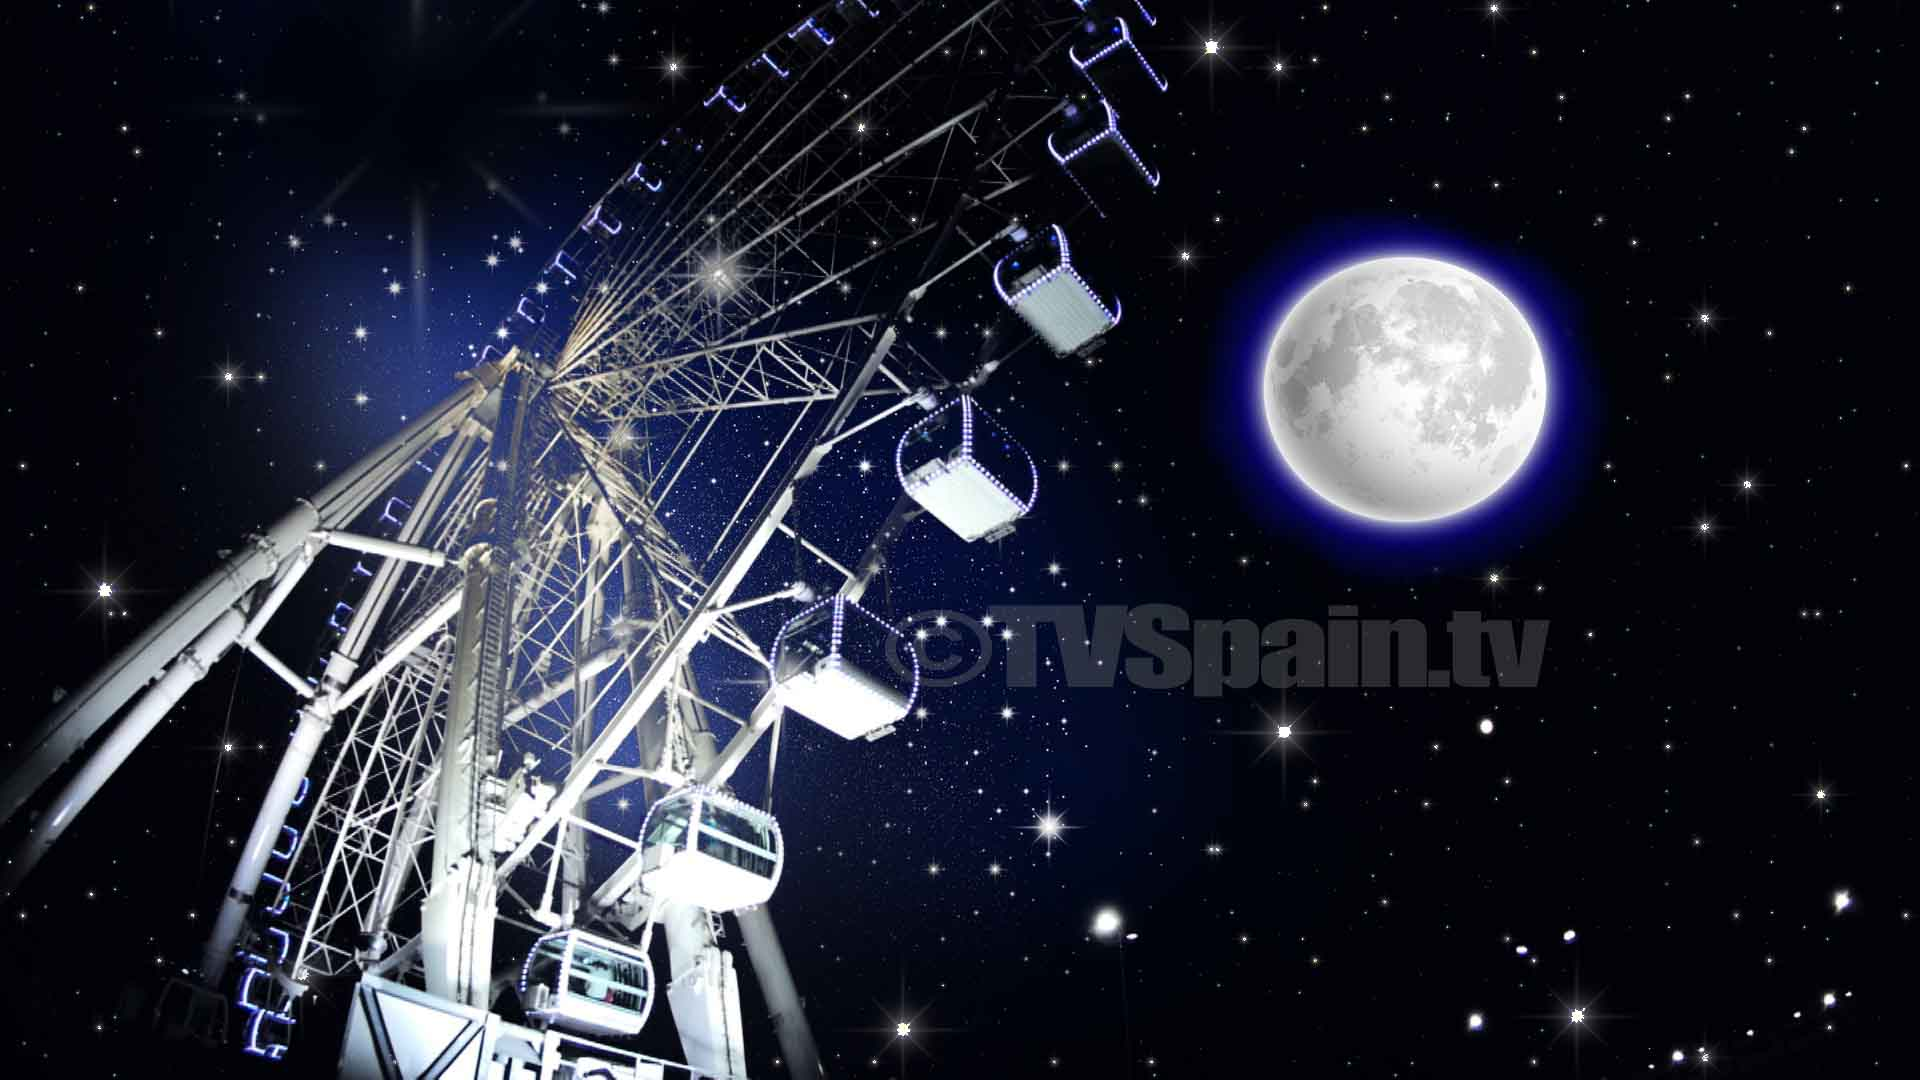 Wheel_moon_2reversed_1920x1080